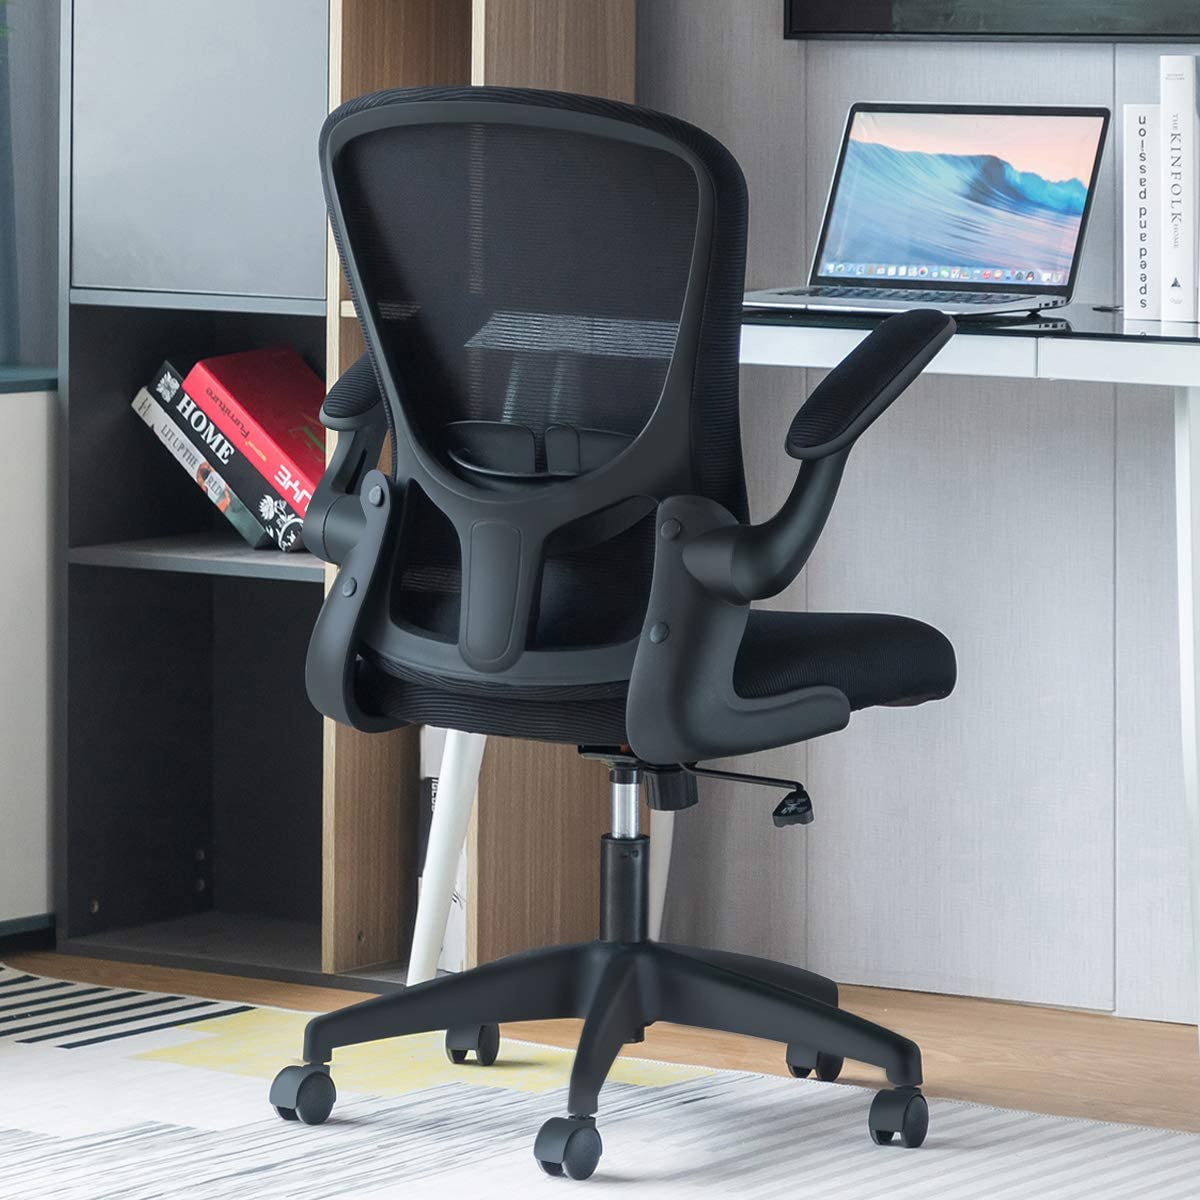 Sytas Office Chair Ergonomic Desk Chair Computer Task Mesh Chair with Flip-up Arms Lumbar Support and Adjustable Height,Black